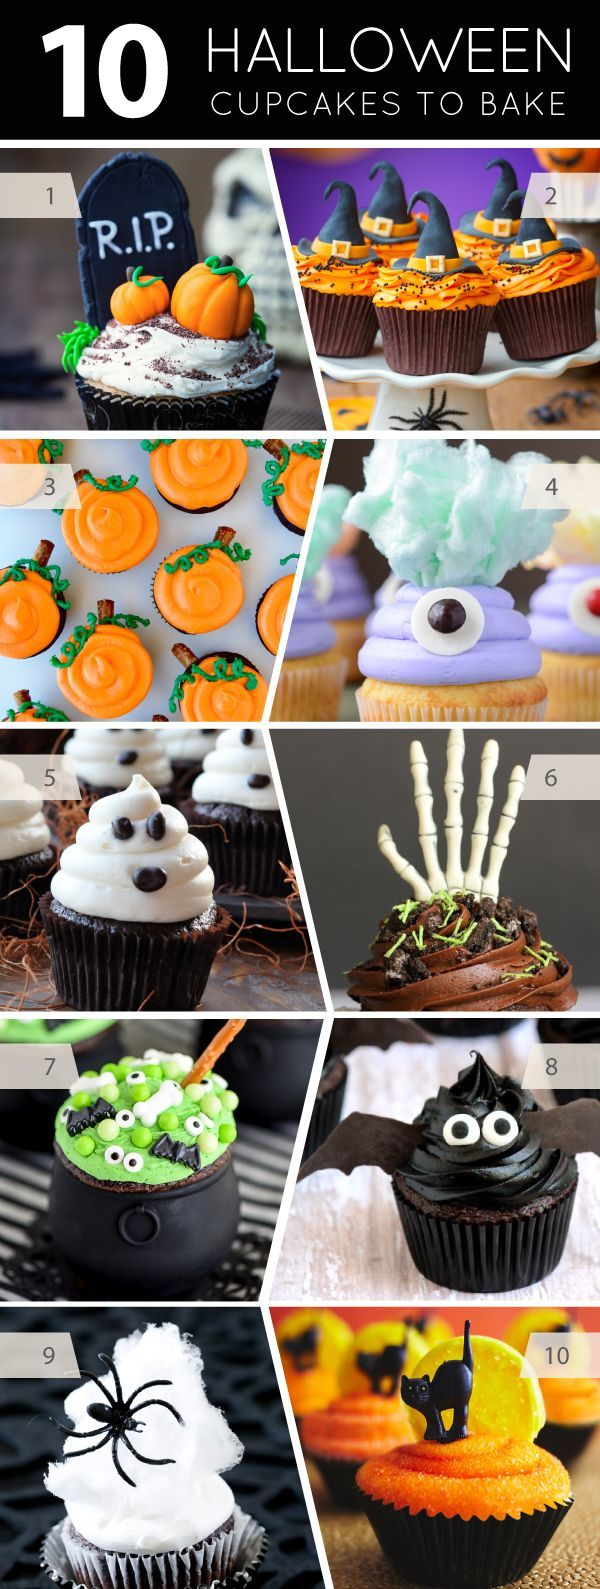 /0/ 10 Halloween Cupcakes to Bake | on TheCakeBlog.com  Pinterest | https://pinterest.com/iminlovewiththekitchen/